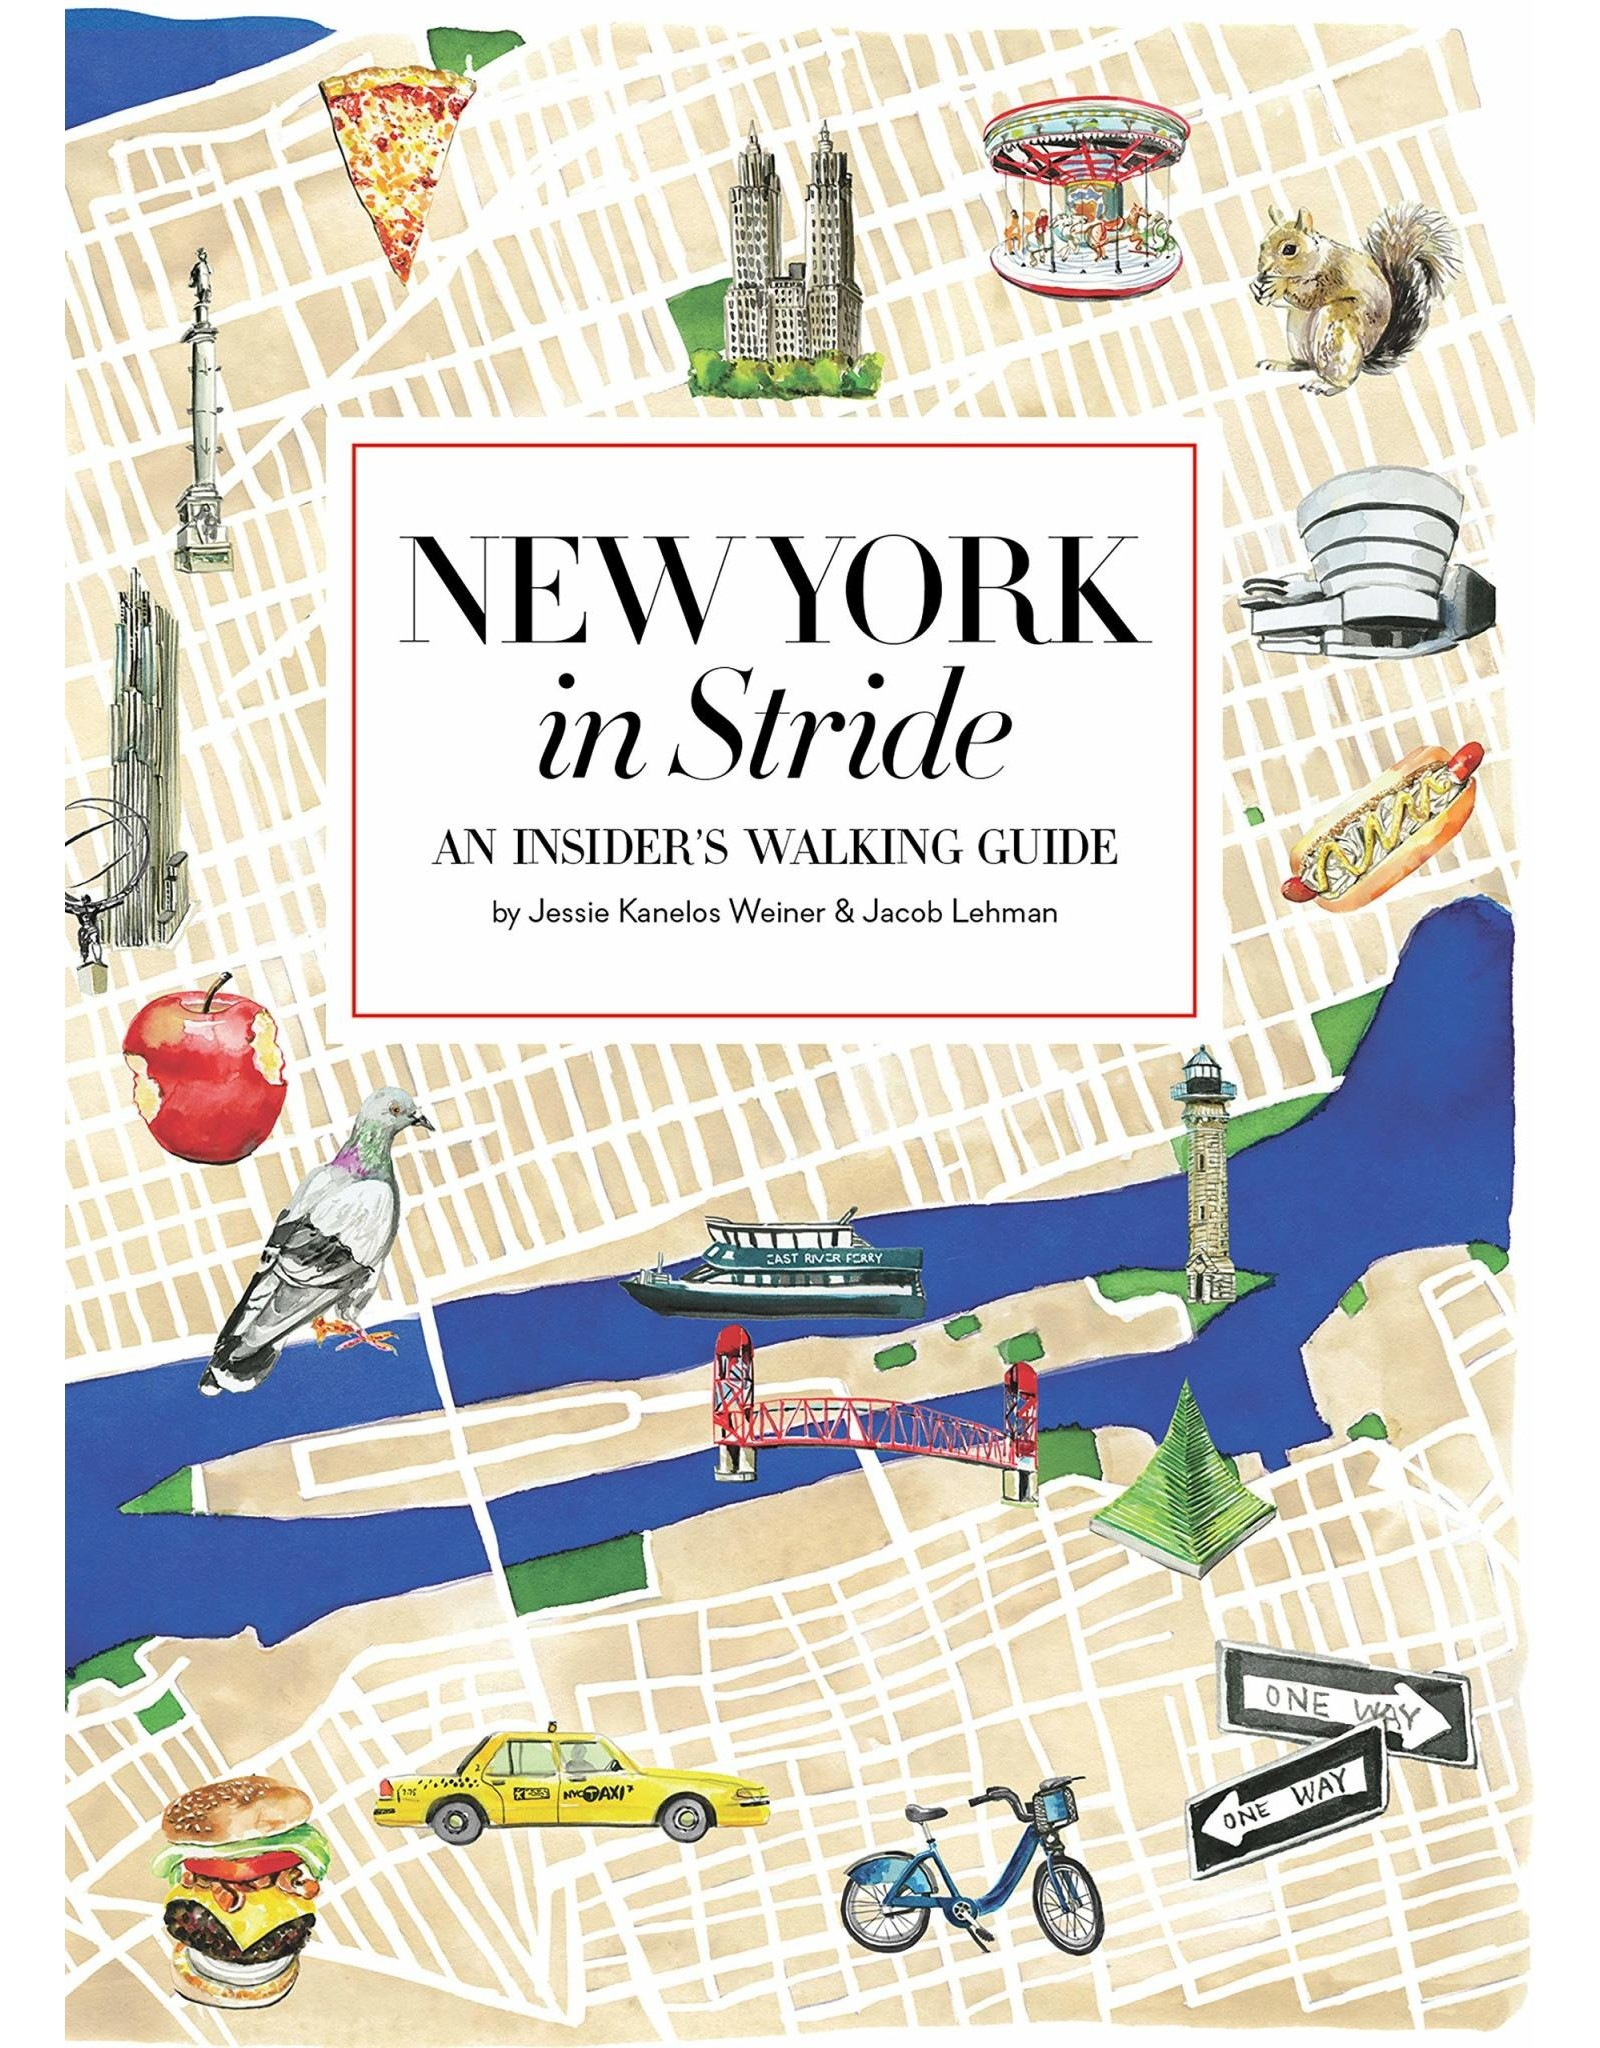 Penguin Random House New York in Stride - An Insider's Walking Guide